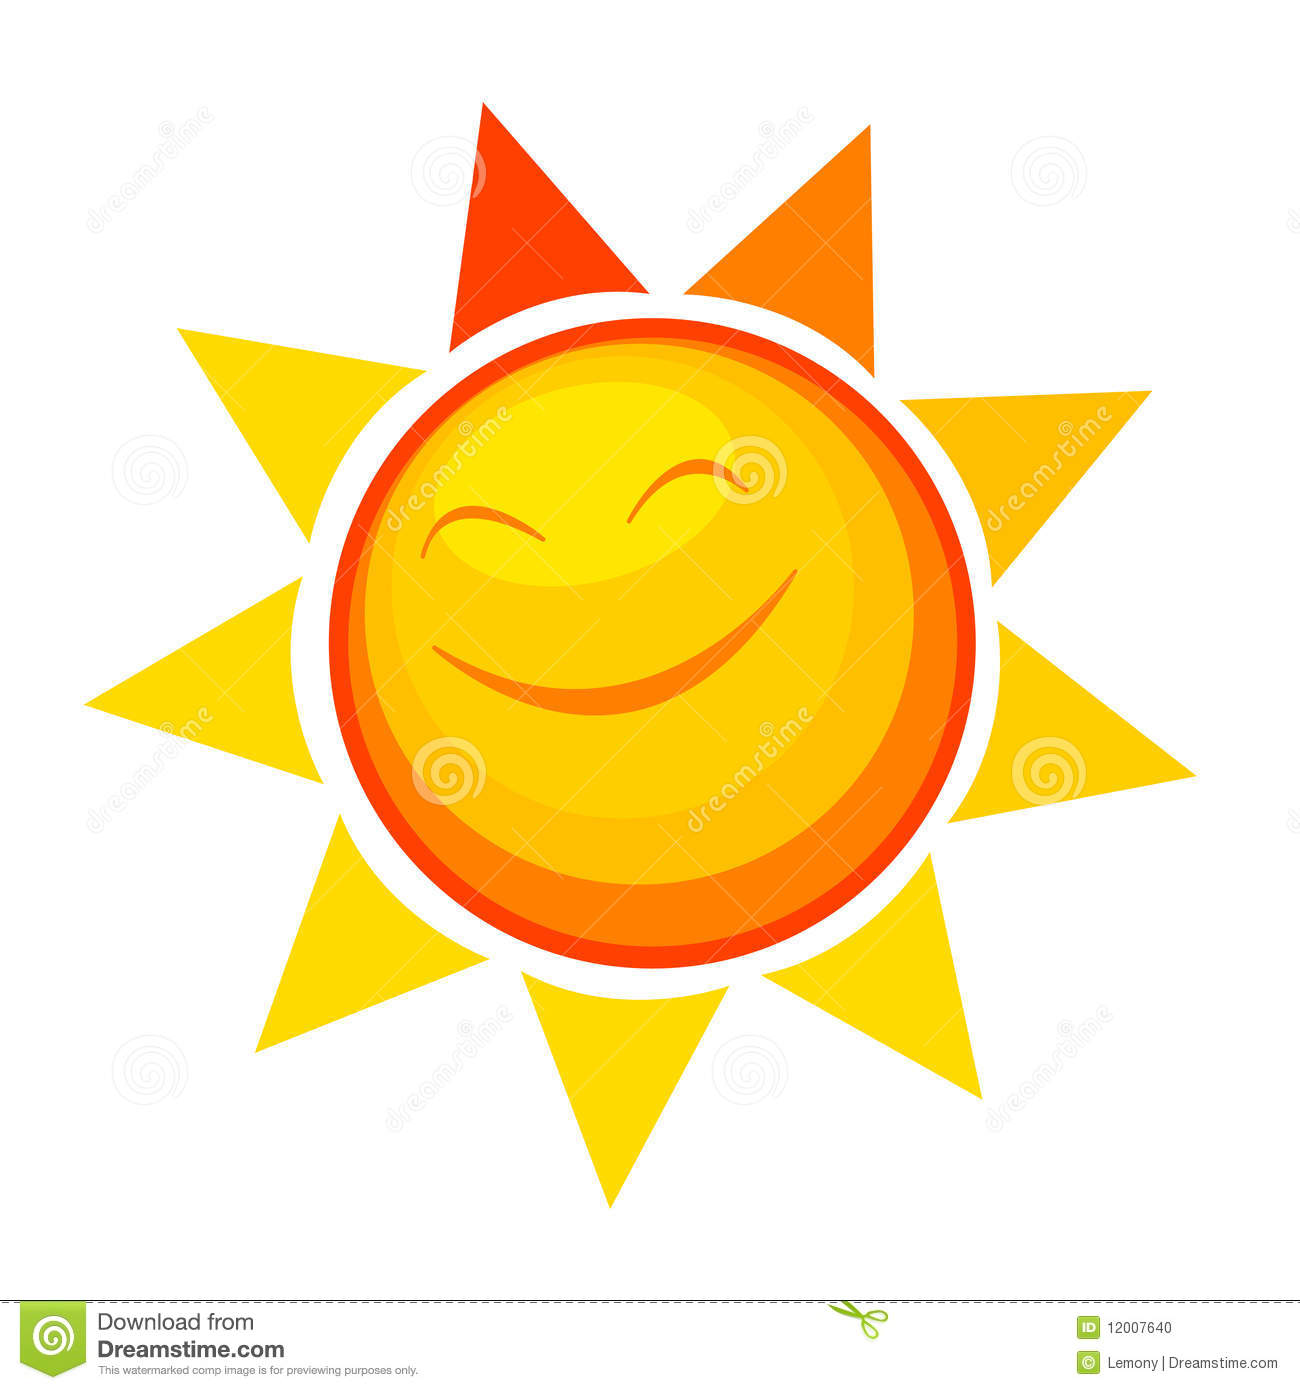 Happy Sunshine Clipart - Clipart Kid